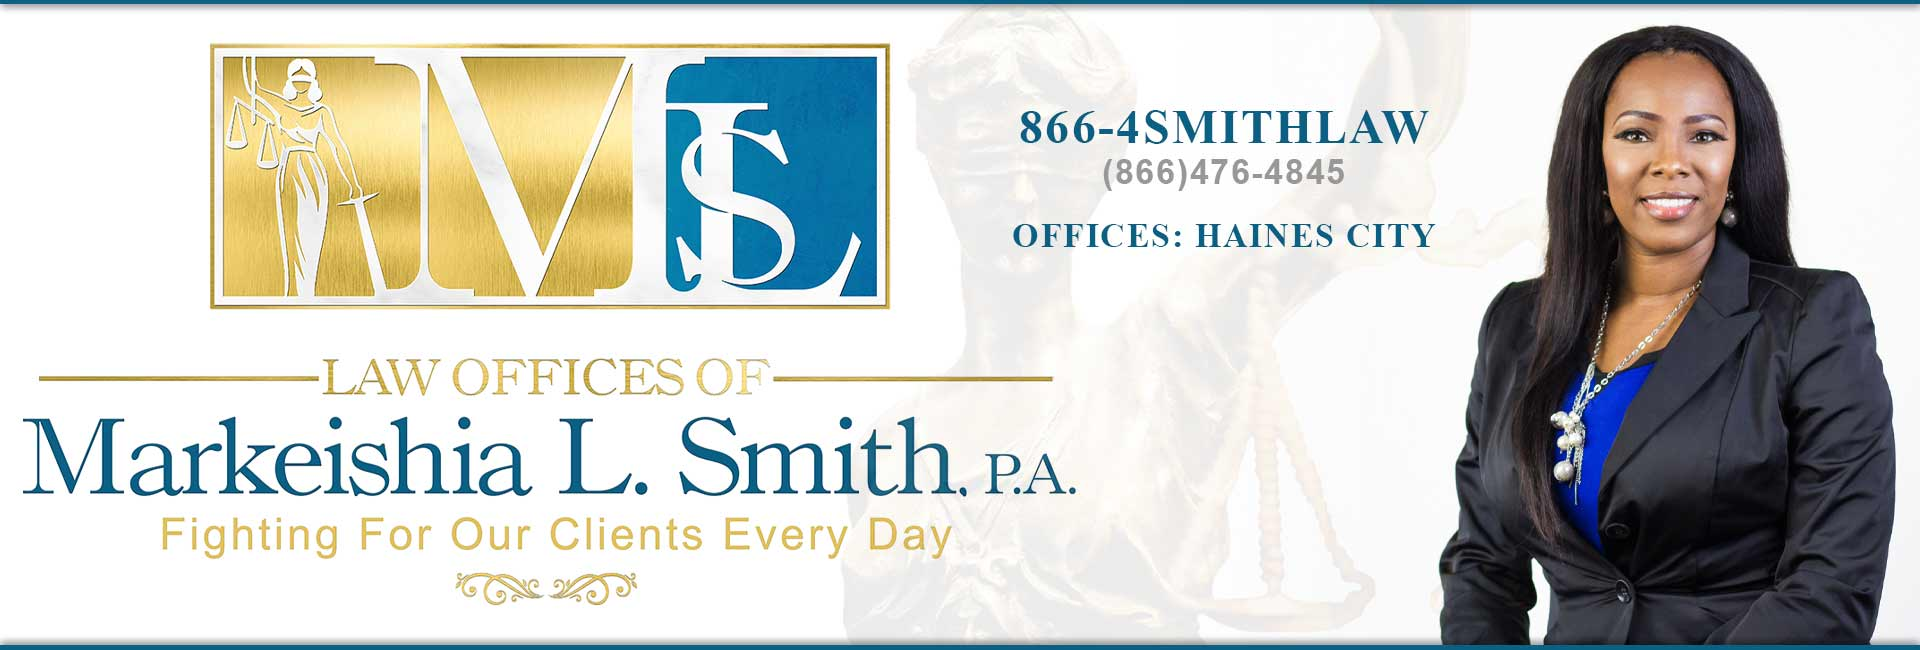 Law Offices of Markeishia L. Smith